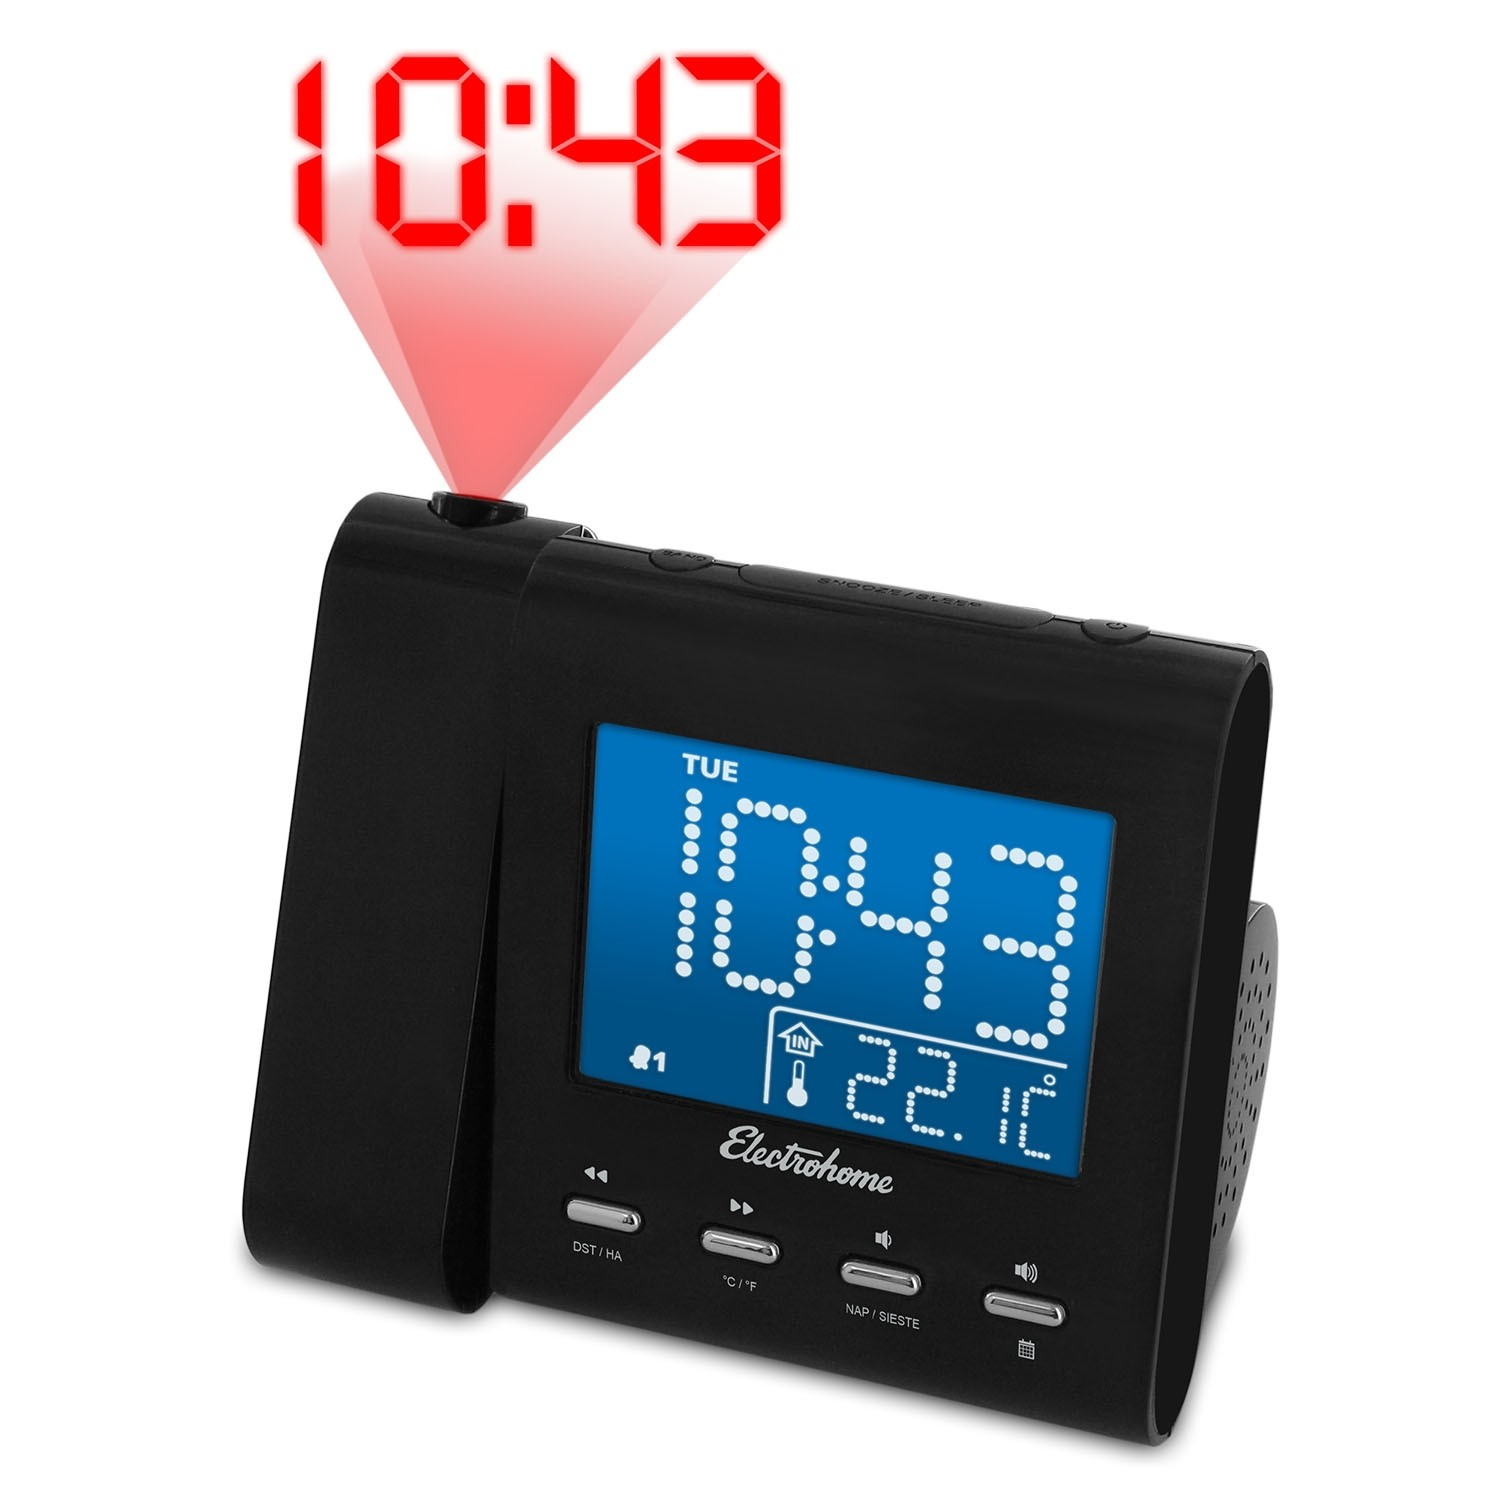 Projection Alarm Clock Radio - Main